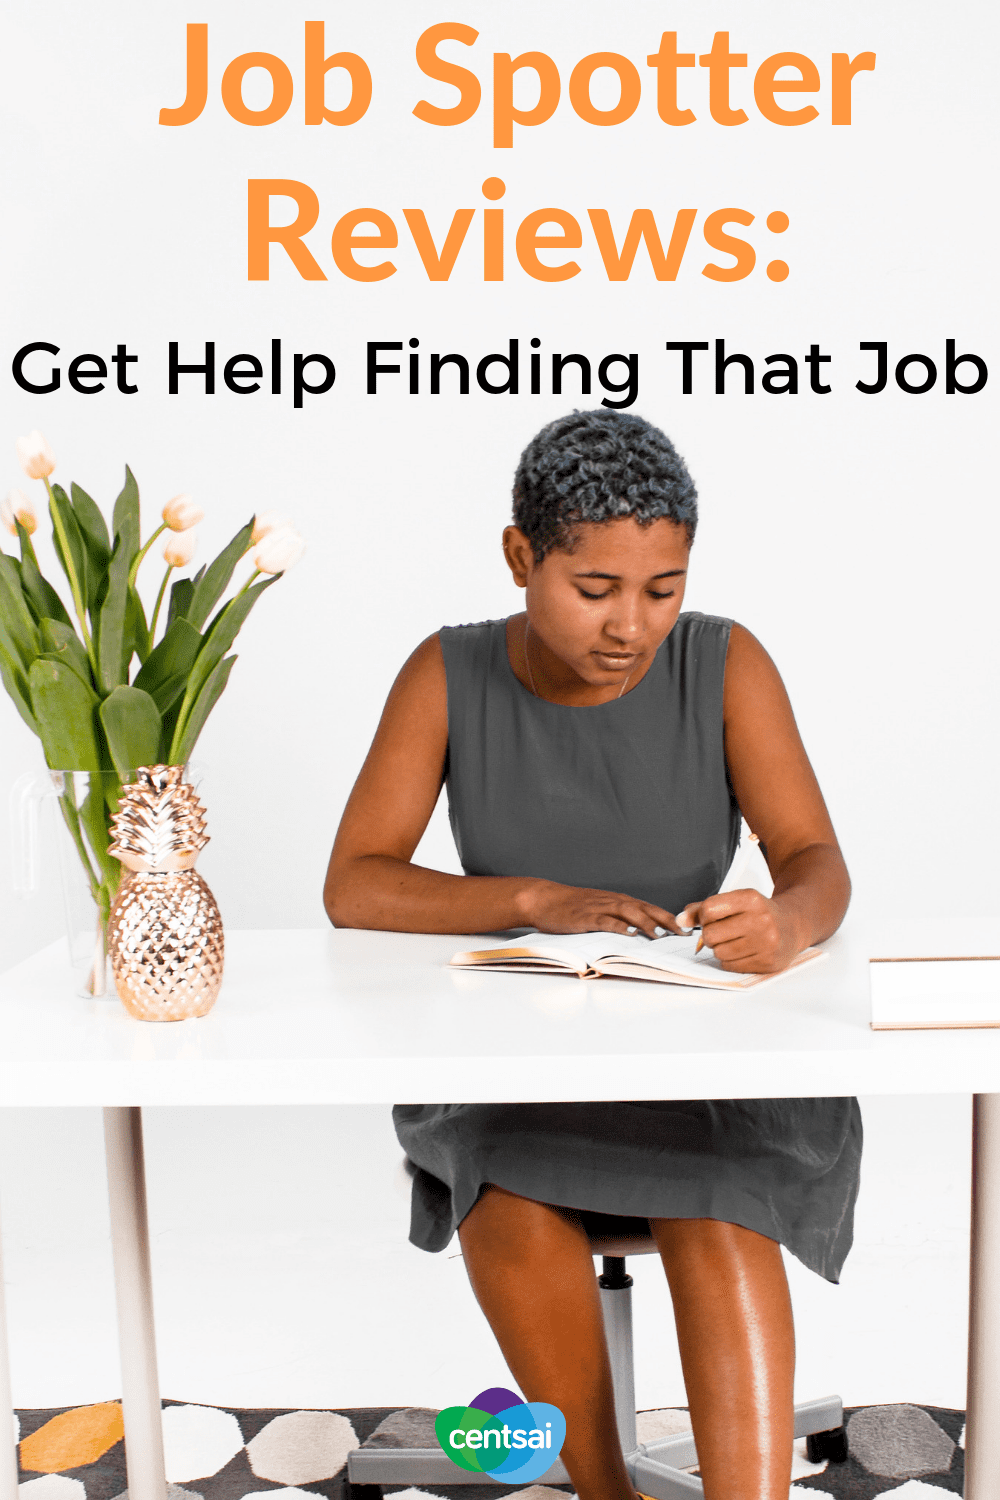 """Job Spotter Reviews: Get Help Finding That Job. Want to make money helping other people find jobs? One app pays you for spotting """"help wanted"""" signs. Read Job Spotter reviews to learn more. #jobspotter #job #makemoney"""